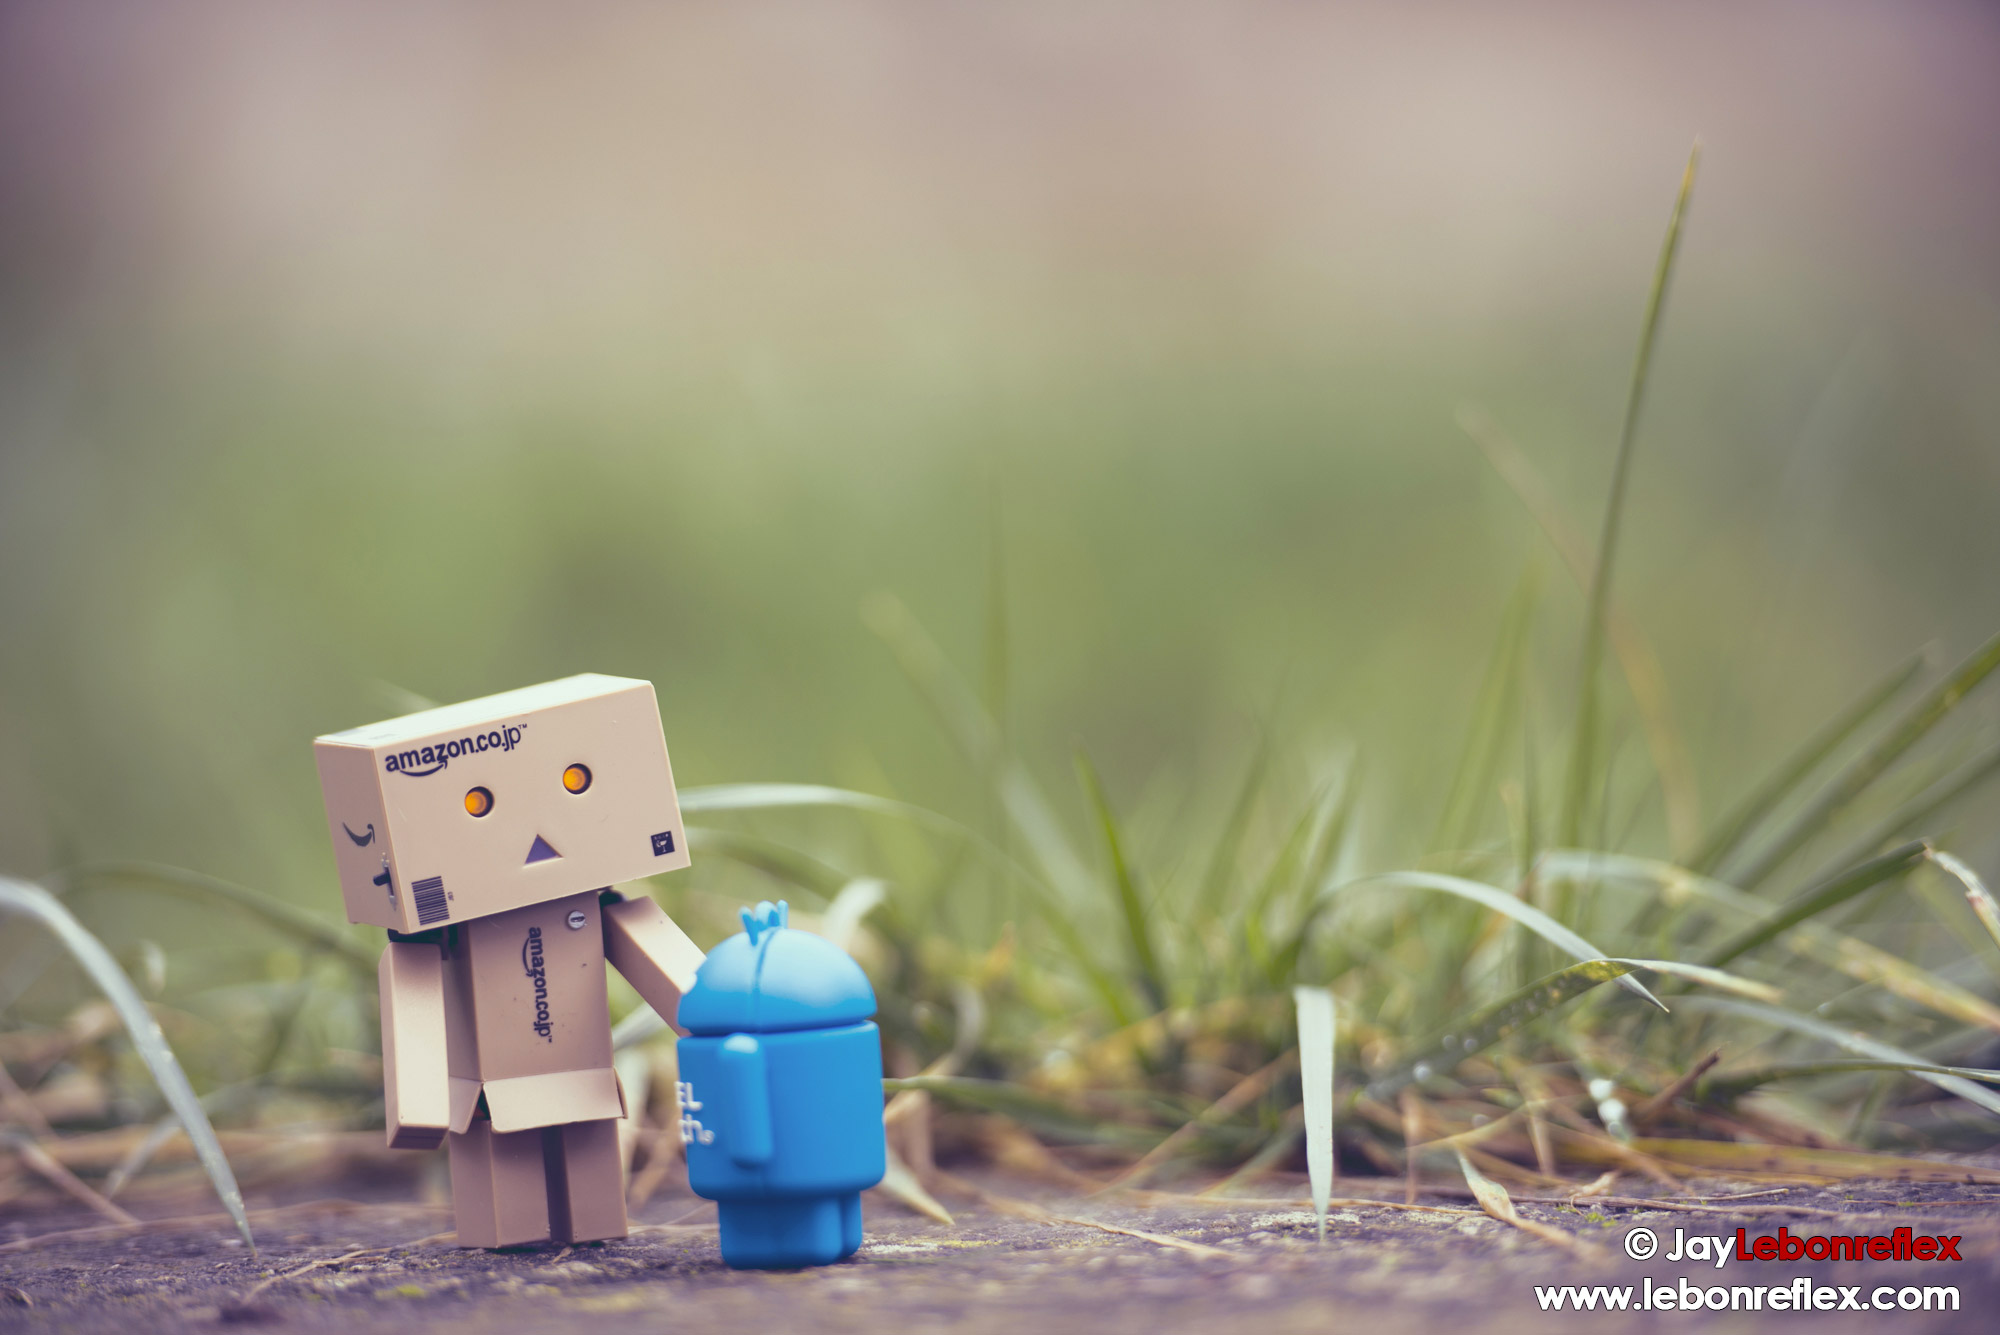 Danboard vs Android